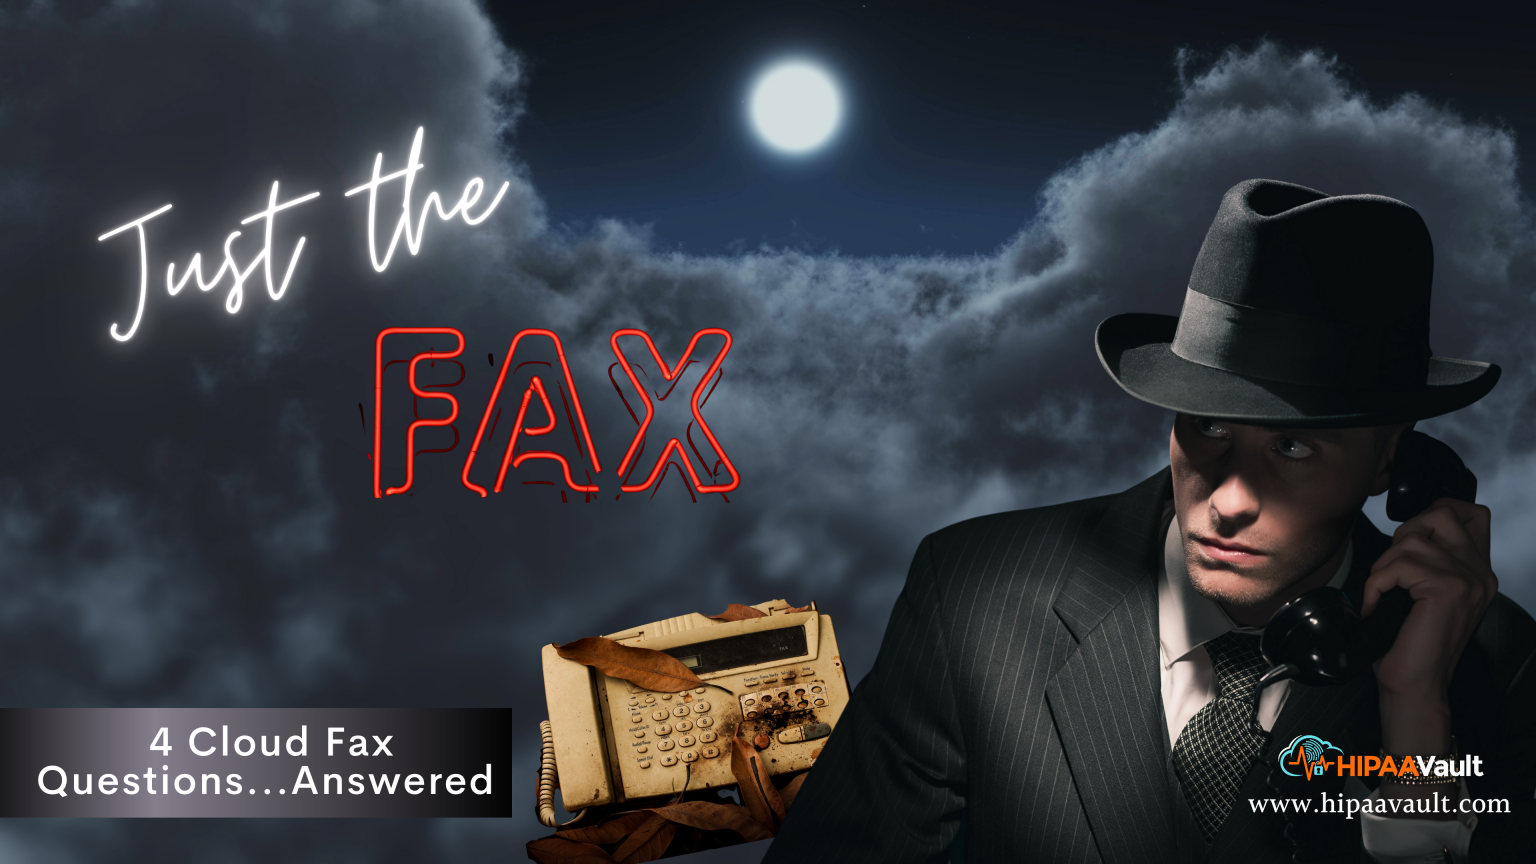 Just the Facts… 4 Key Fax Questions Answered with HIPAA Fax